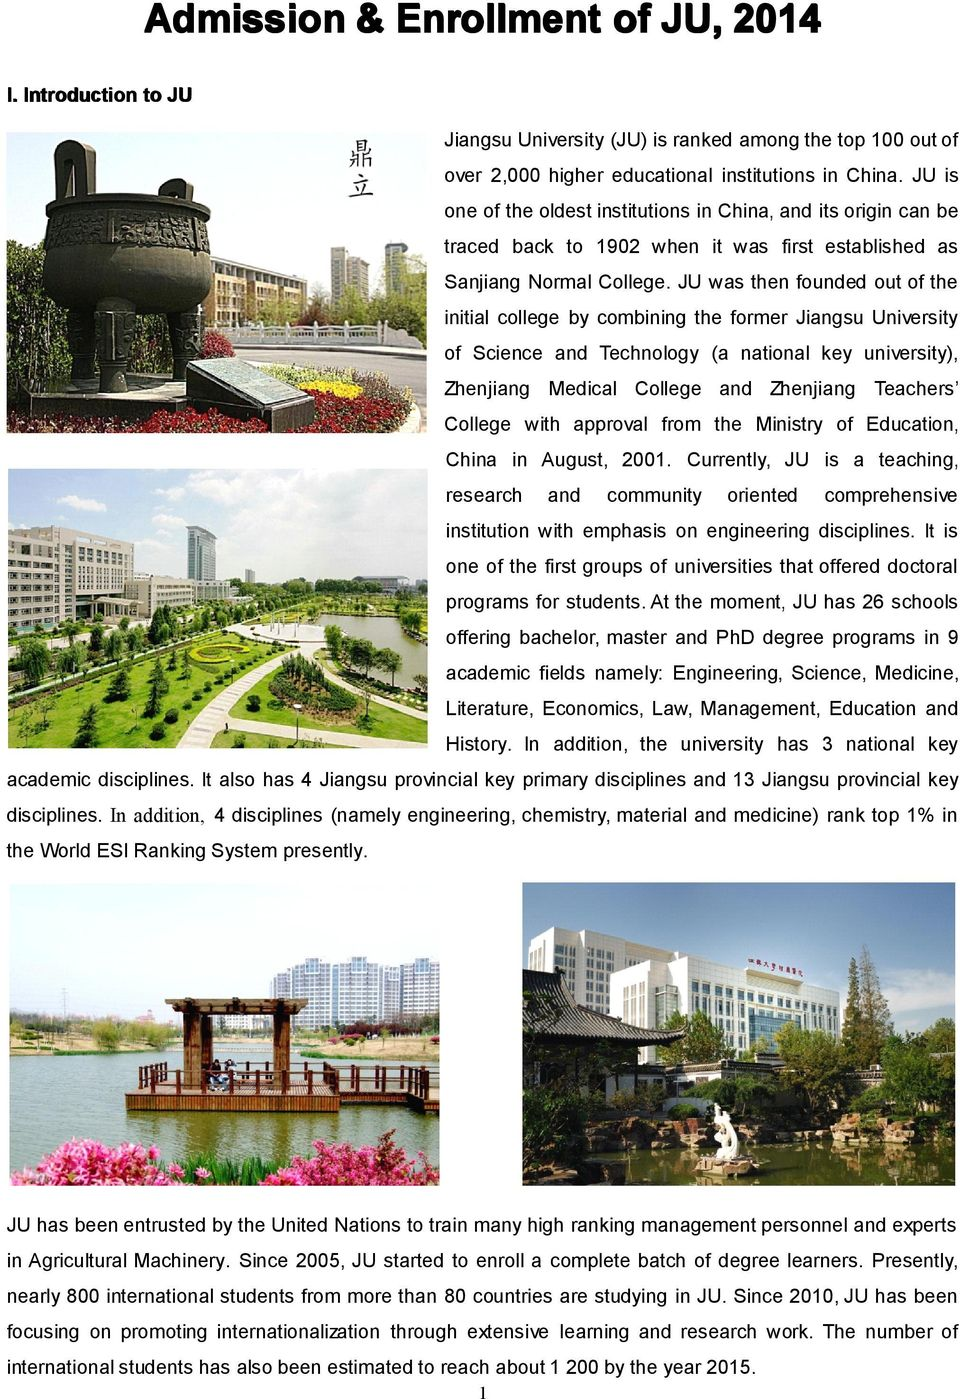 JU was then founded out of the initial college by combining the former Jiangsu University of Science and Technology (a national key university), Zhenjiang Medical College and Zhenjiang Teachers